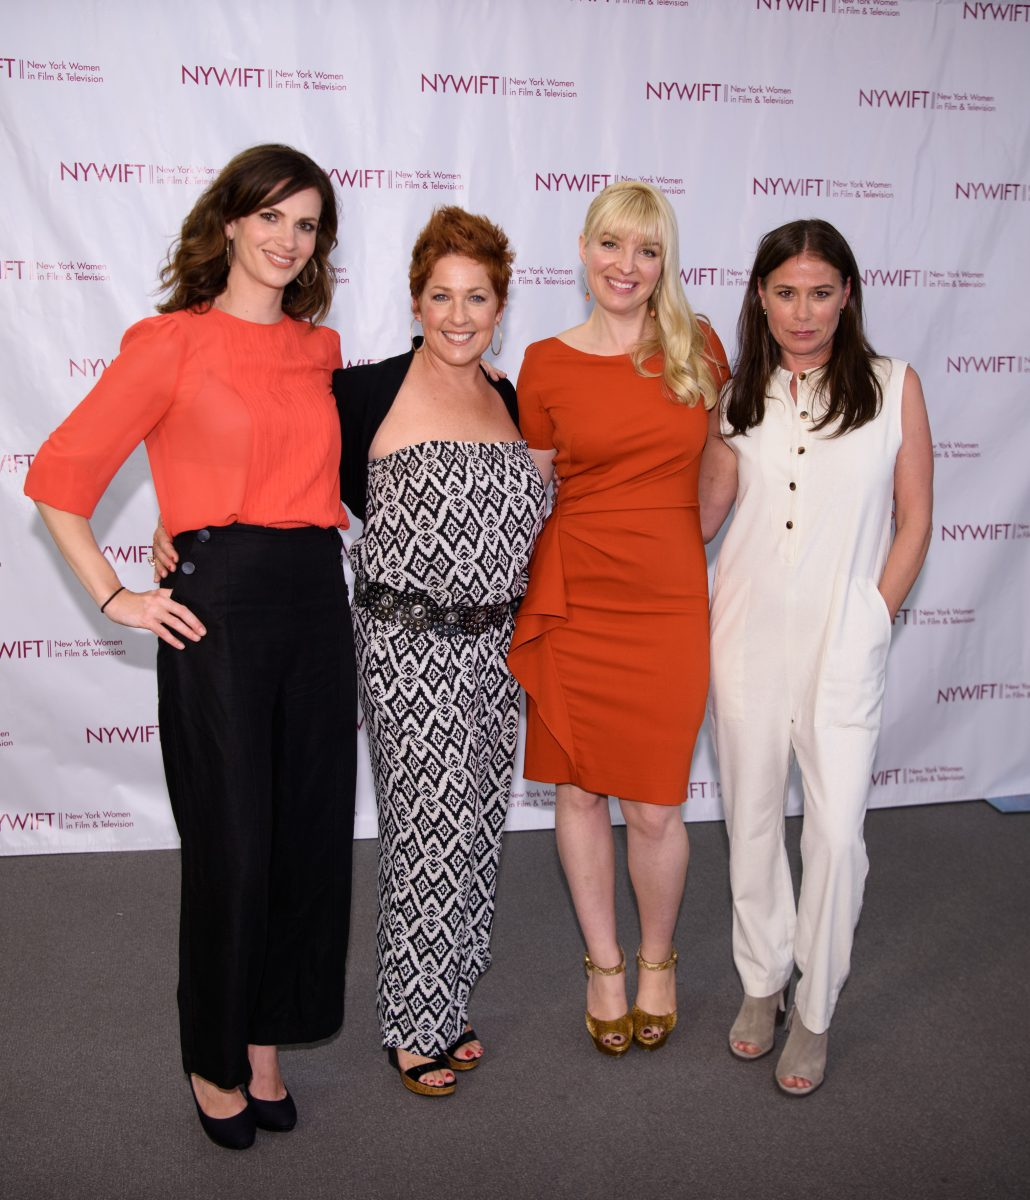 NEW YORK, NY - JUNE 13: Sheri Kornhaber, Hair Stylist Dianes Sikes , Caroline Duncan and Maura Tierney attend the 2016 New York Women In Film & Television's Designing Women Galaat CUNY Graduate Center on June 13, 2016 in New York City. (Photo by Dave Kotinsky/Getty Images)